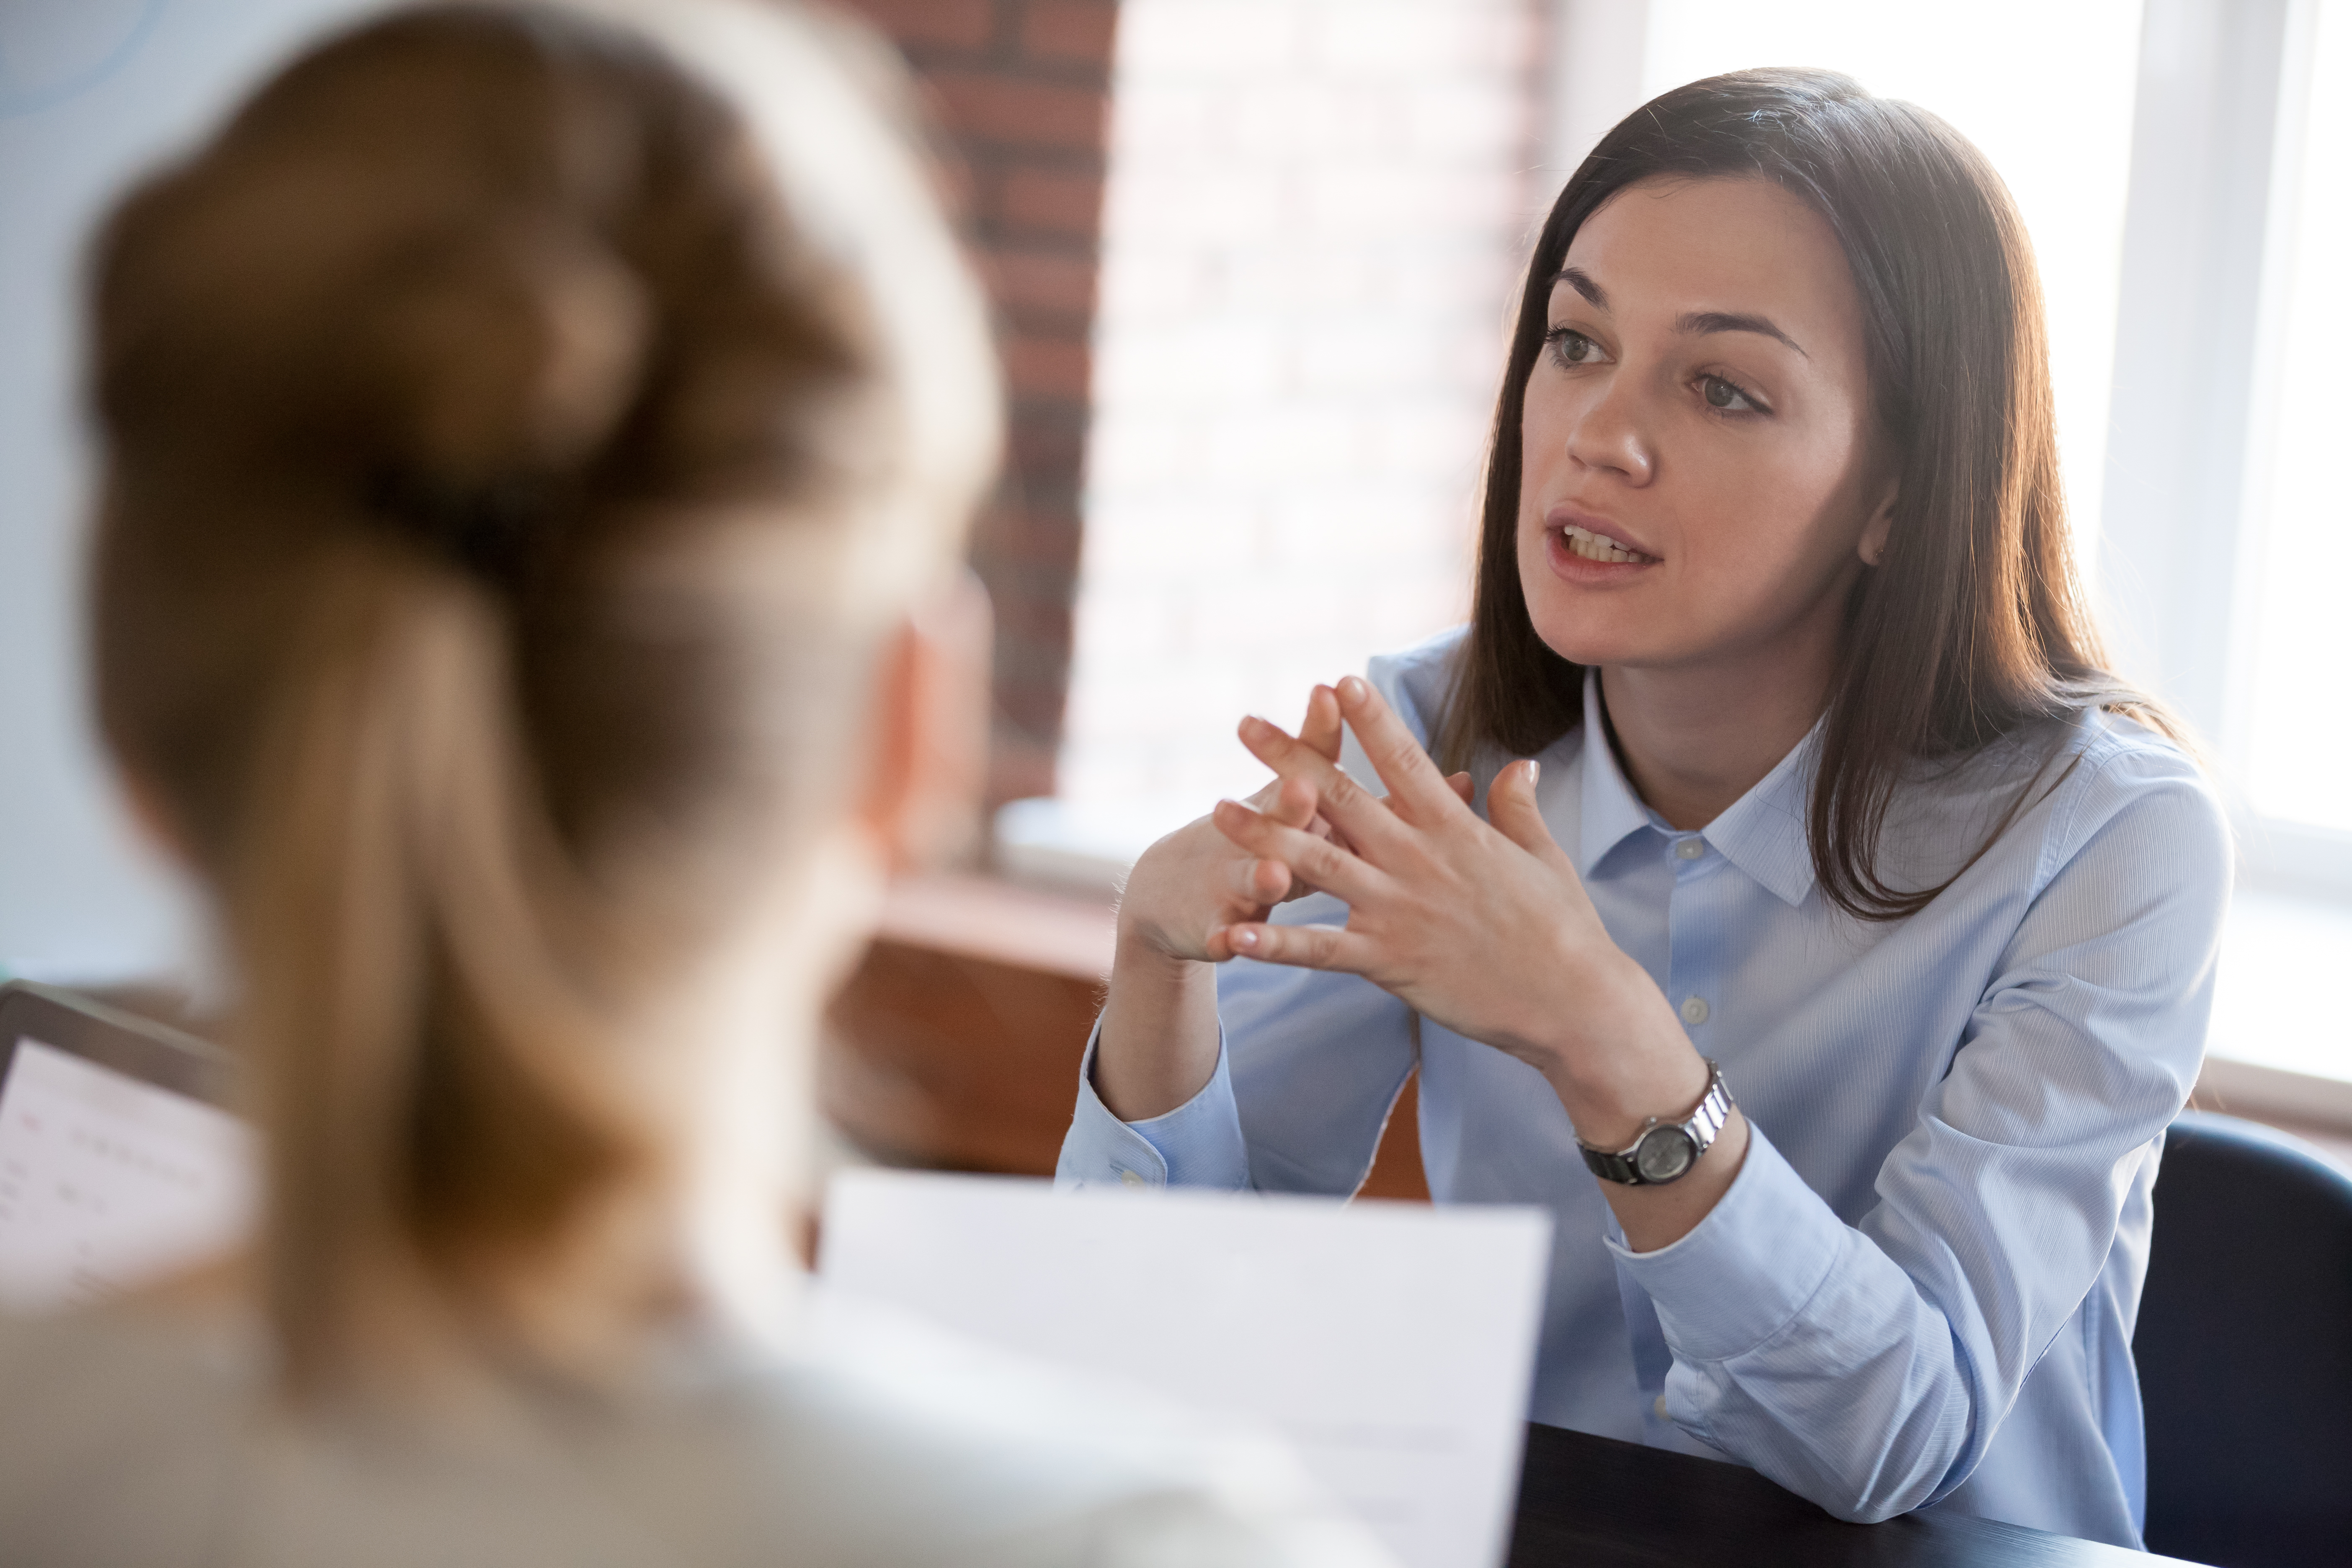 Confident focused businesswoman speaking to people at business negotiations